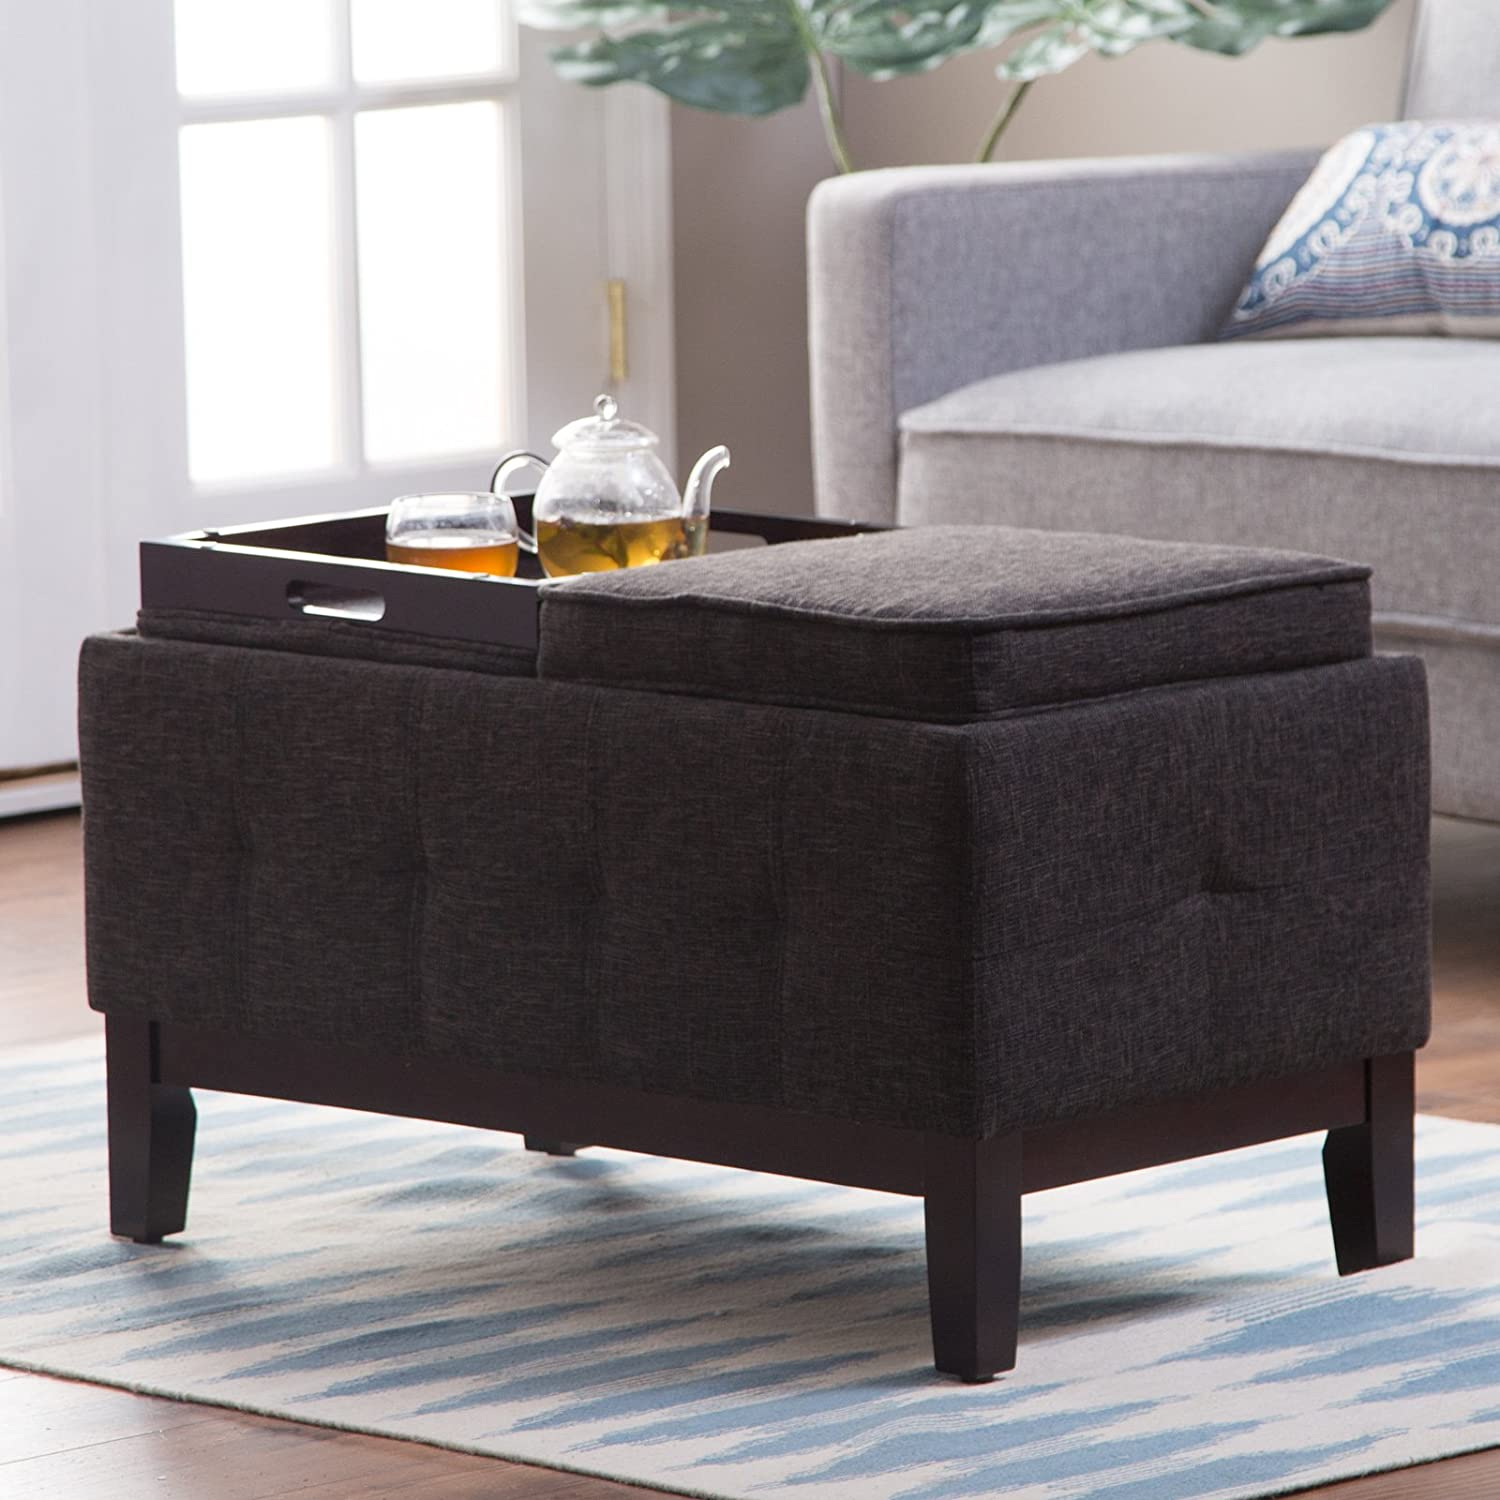 Amazon com storage bench ottoman tray table home furniture entryway living room bedroom indoor flip lids tufted sides space saver kitchen dining